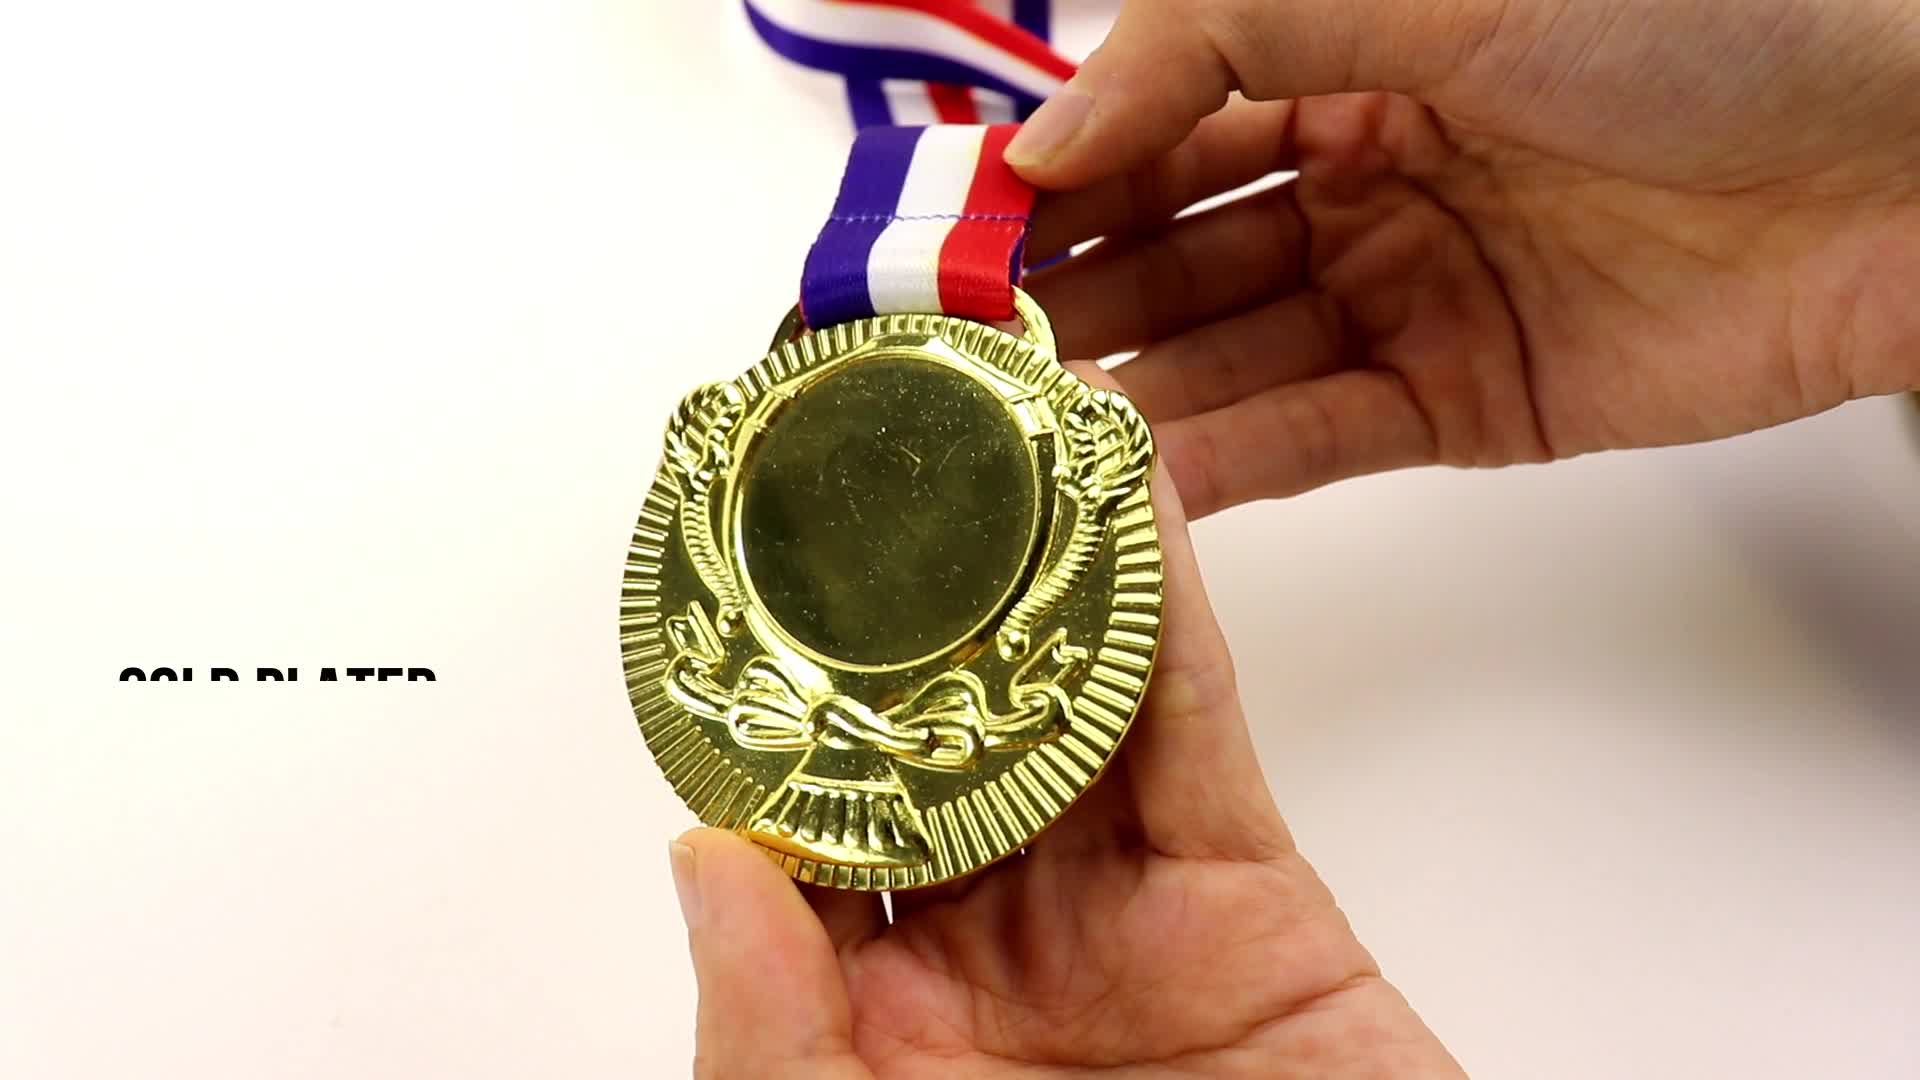 wholesale award cup sports souvenir school students metal awards gold ball soccer trophy cup